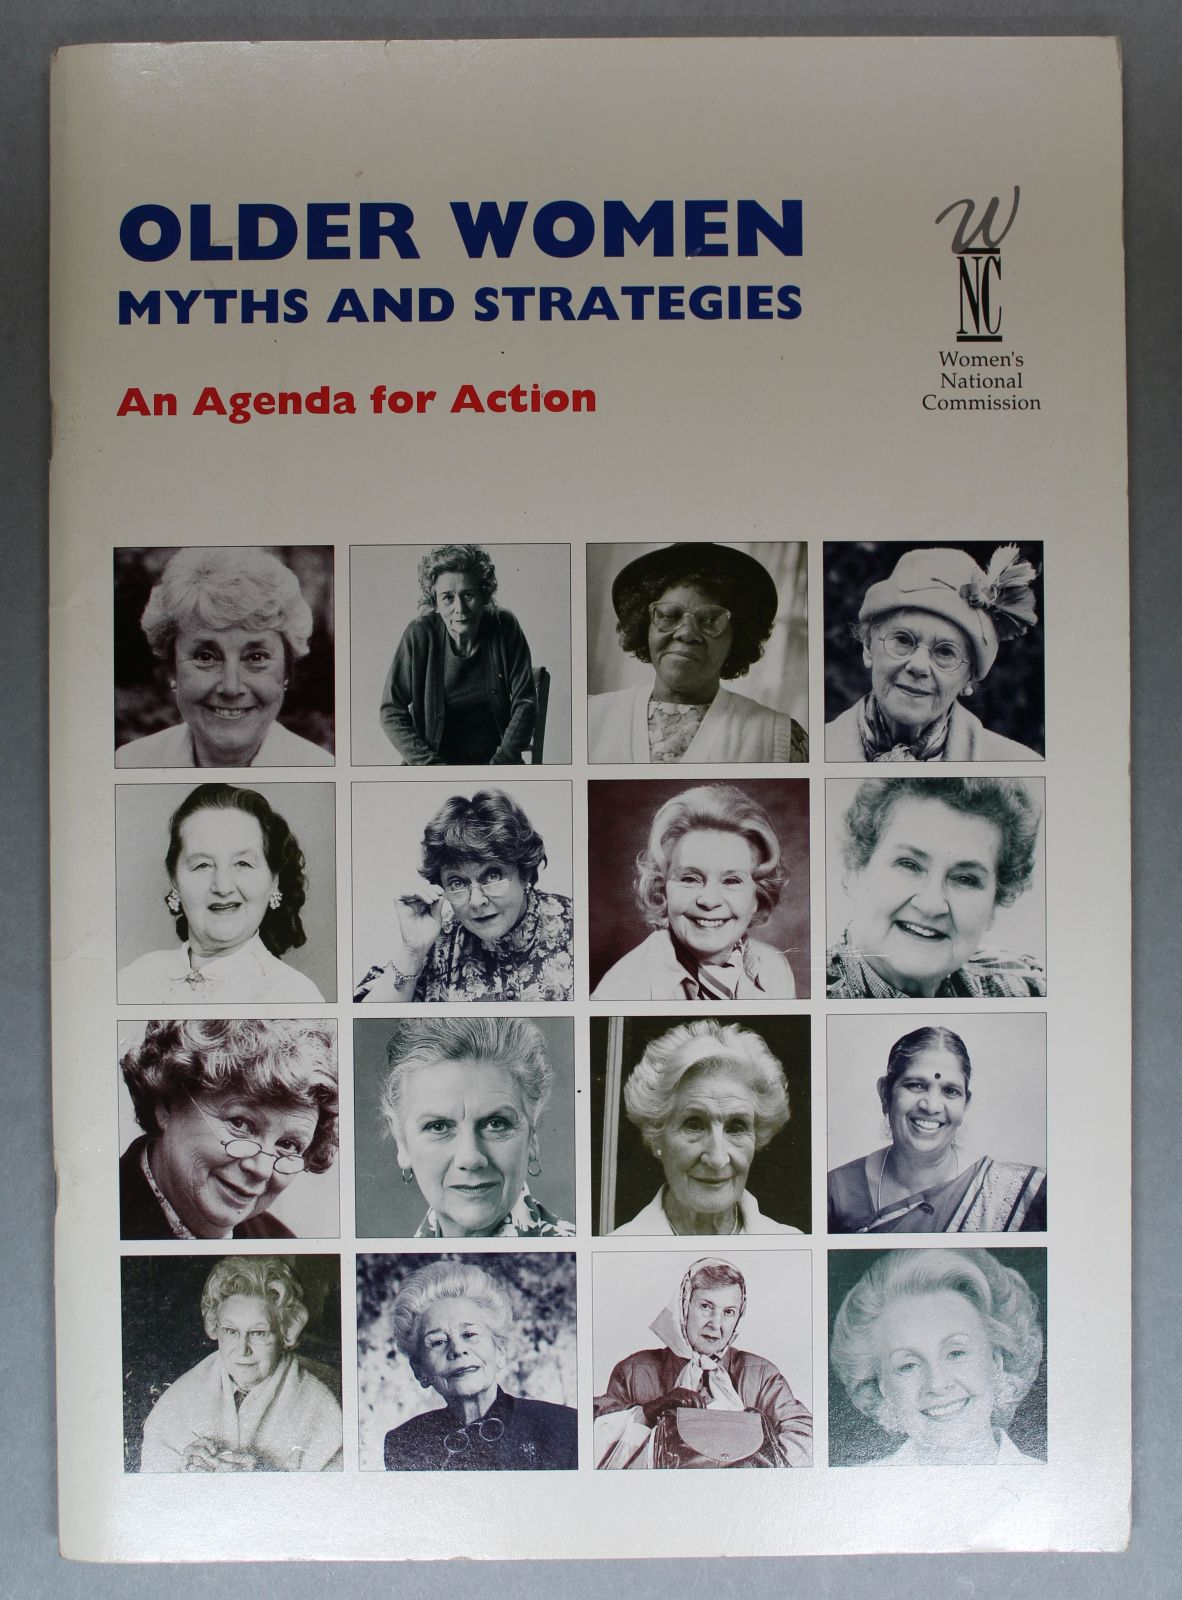 A book featuring lots of smaller images of older women on its cover.